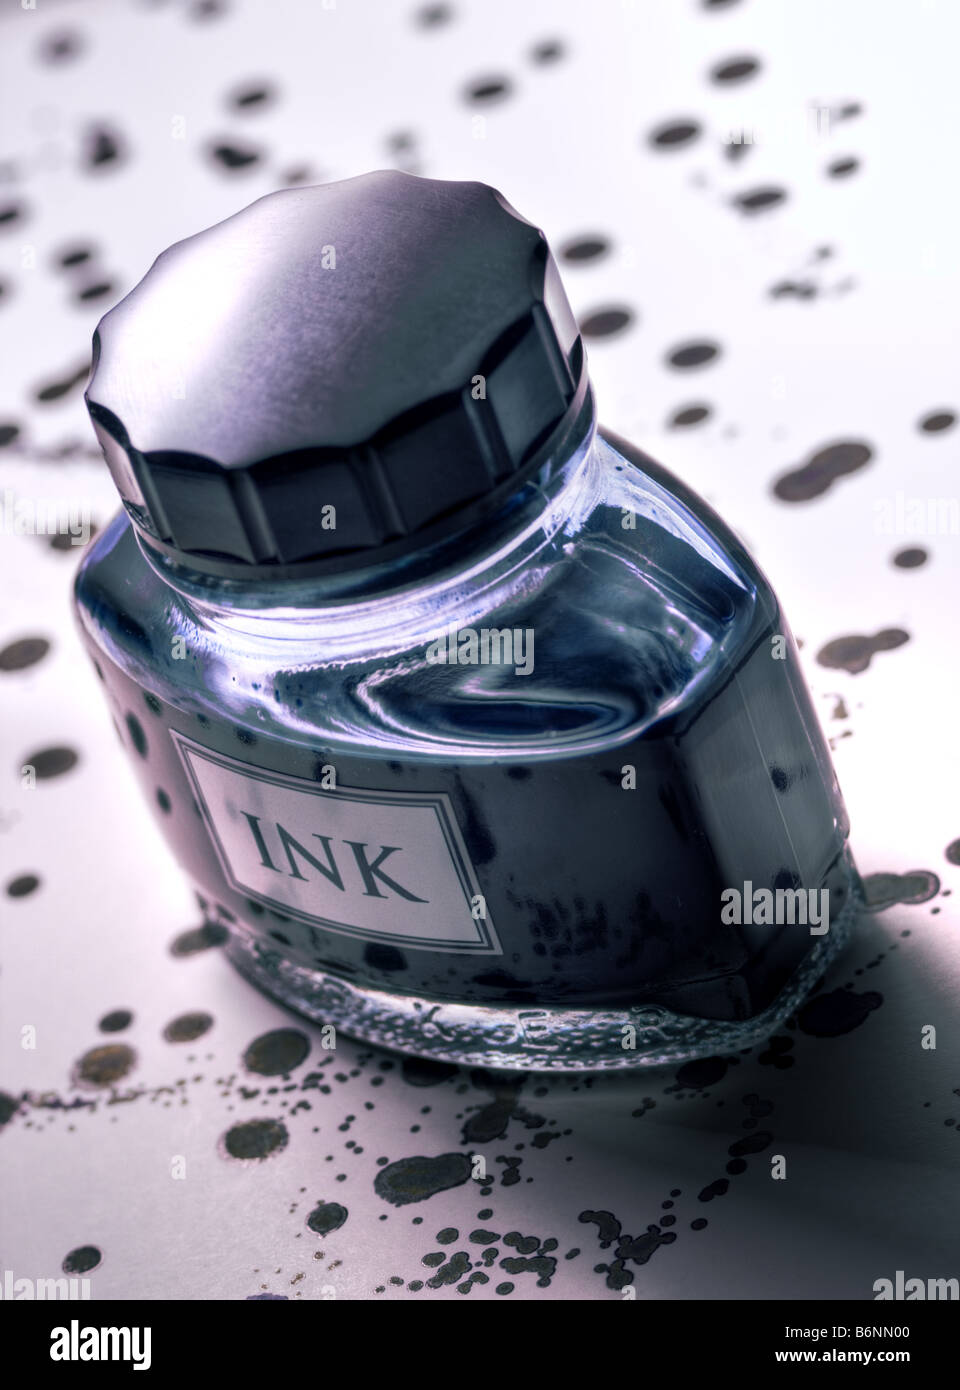 Ink bottle - Stock Image